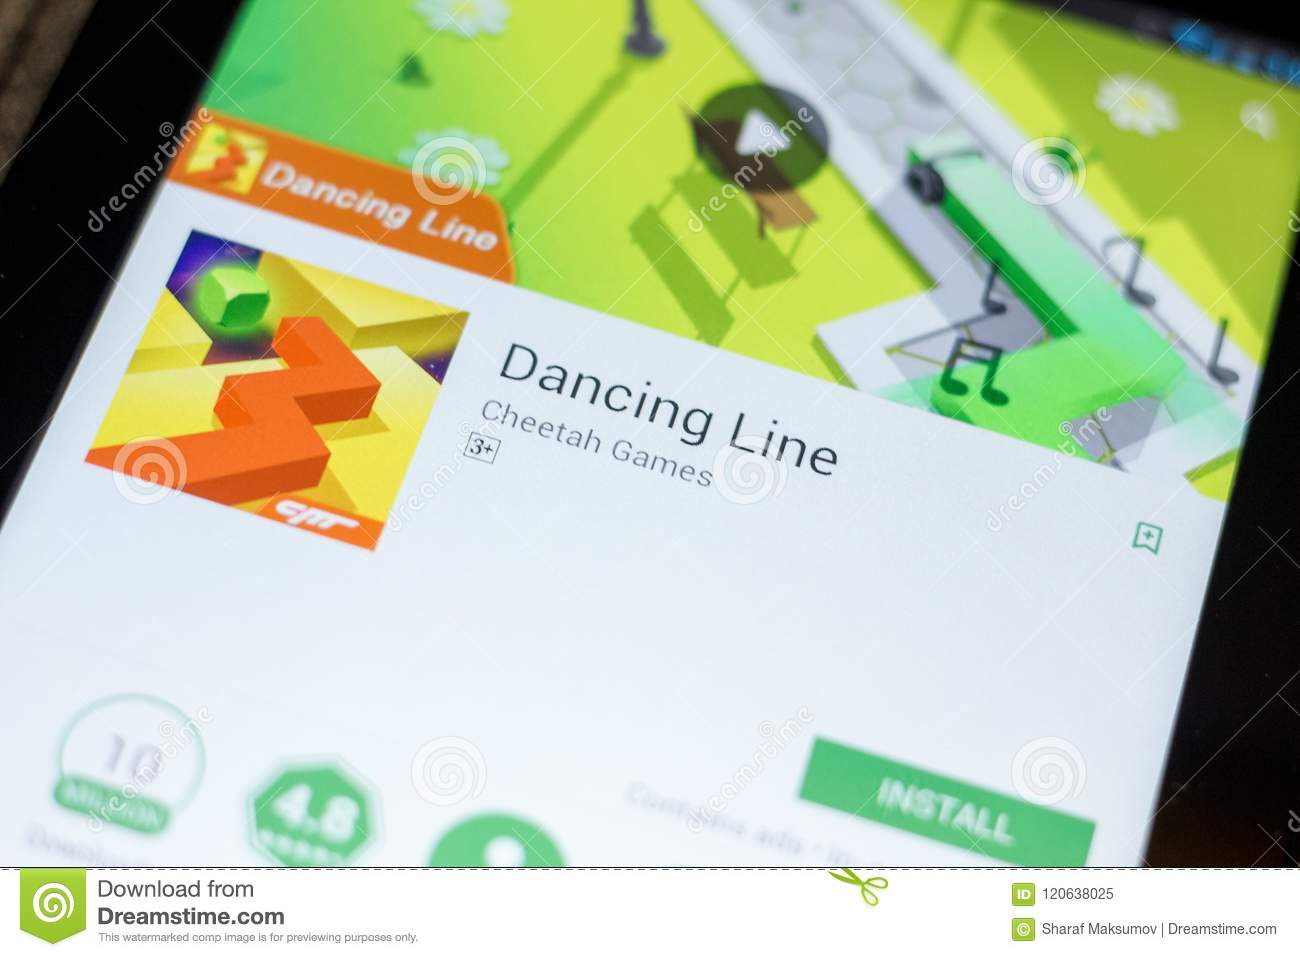 Ryazan, Russia - July 03, 2018: Dancing Line Mobile App On